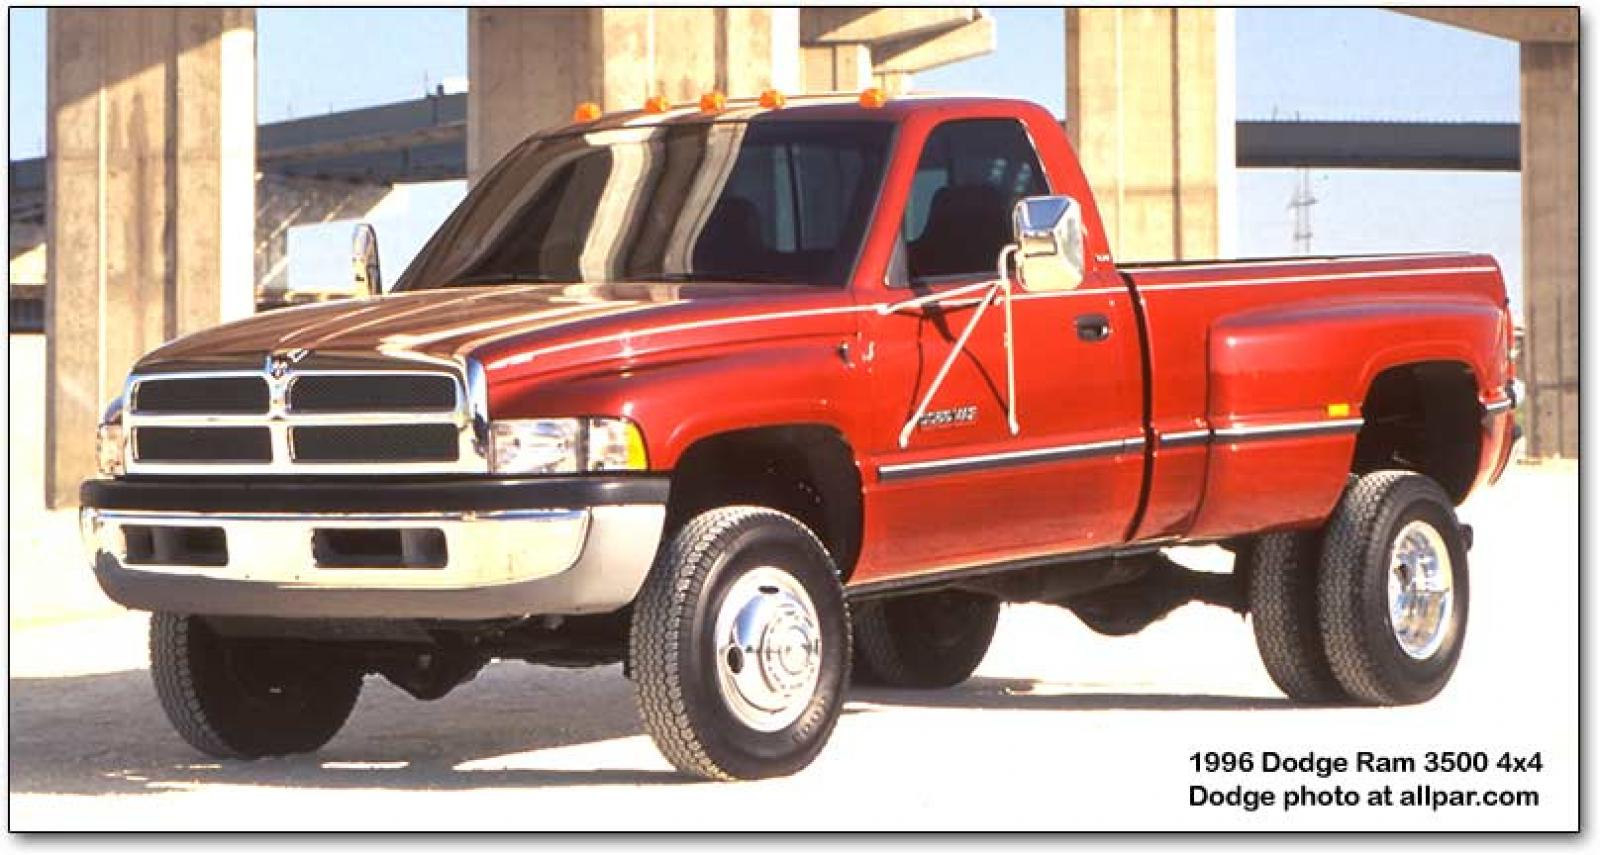 1996 Dodge Ram Pickup 3500 Information And Photos Zombiedrive Fisher Plow Wiring Diagram 2500 800 1024 1280 1600 Origin